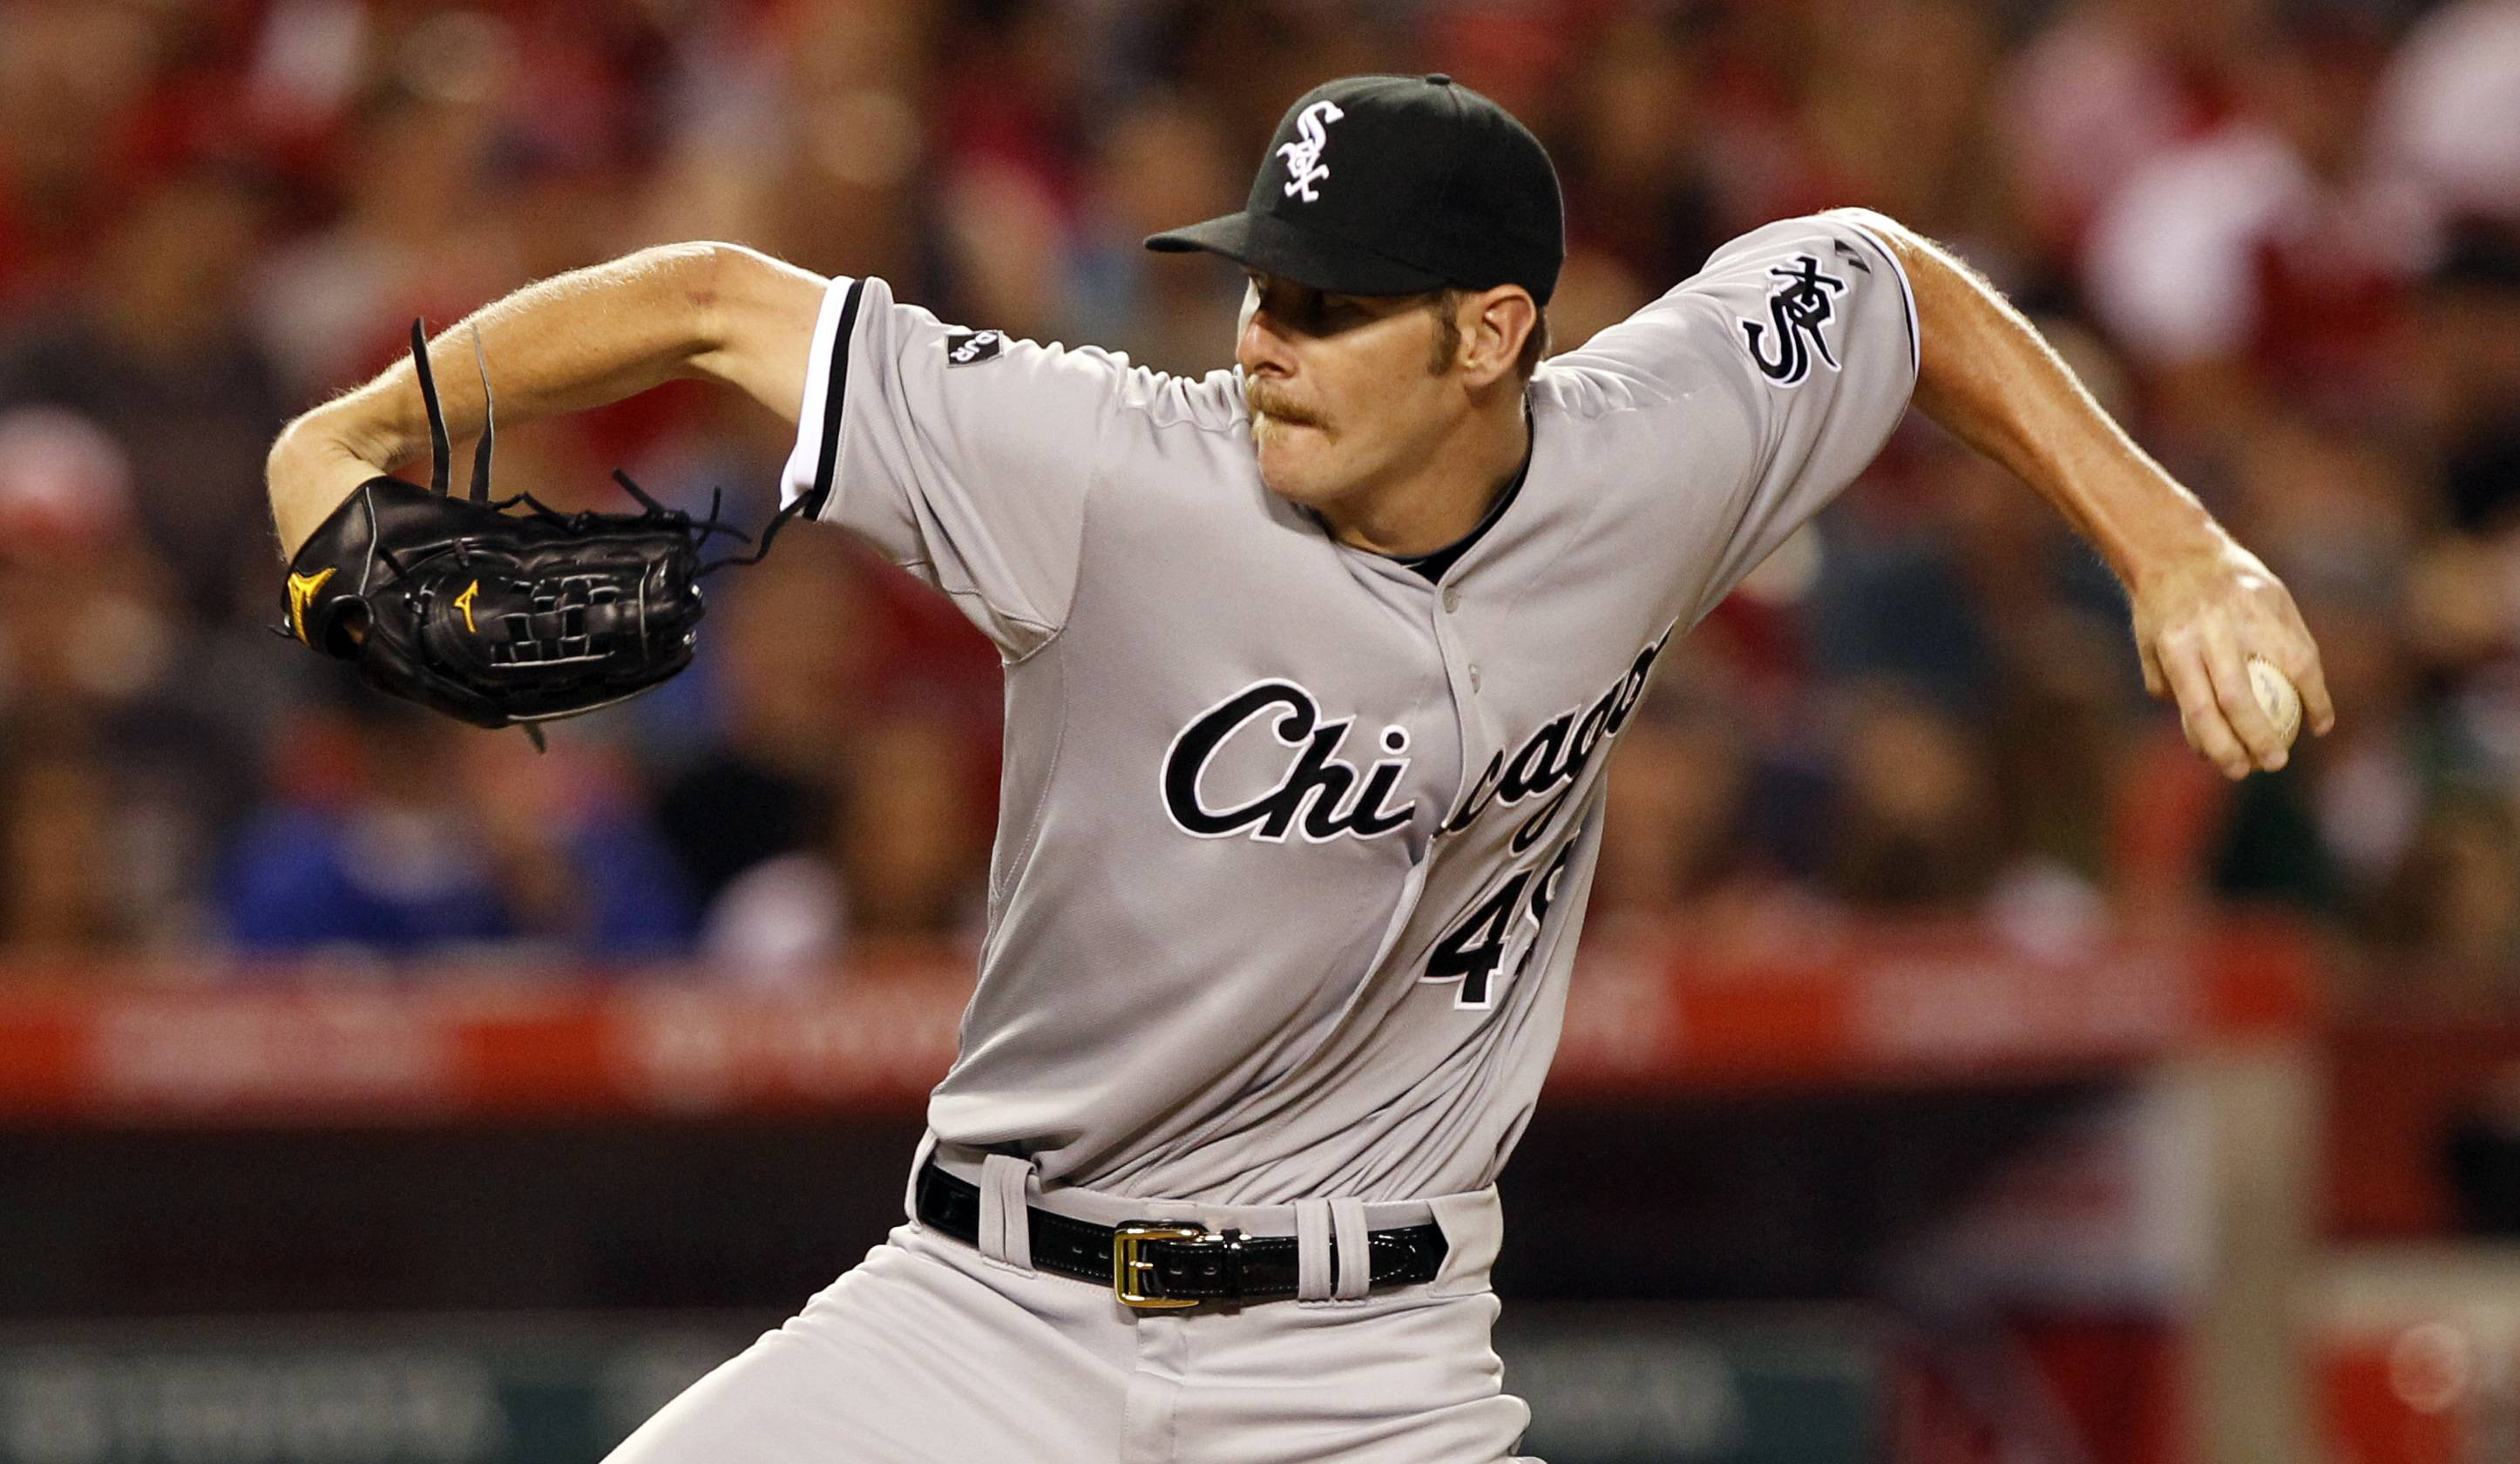 White Sox starting pitcher Chris Sale took a three-hit shutout into the eighth inning, but the Sox still lost 6-5 Saturday night in Anaheim, California.